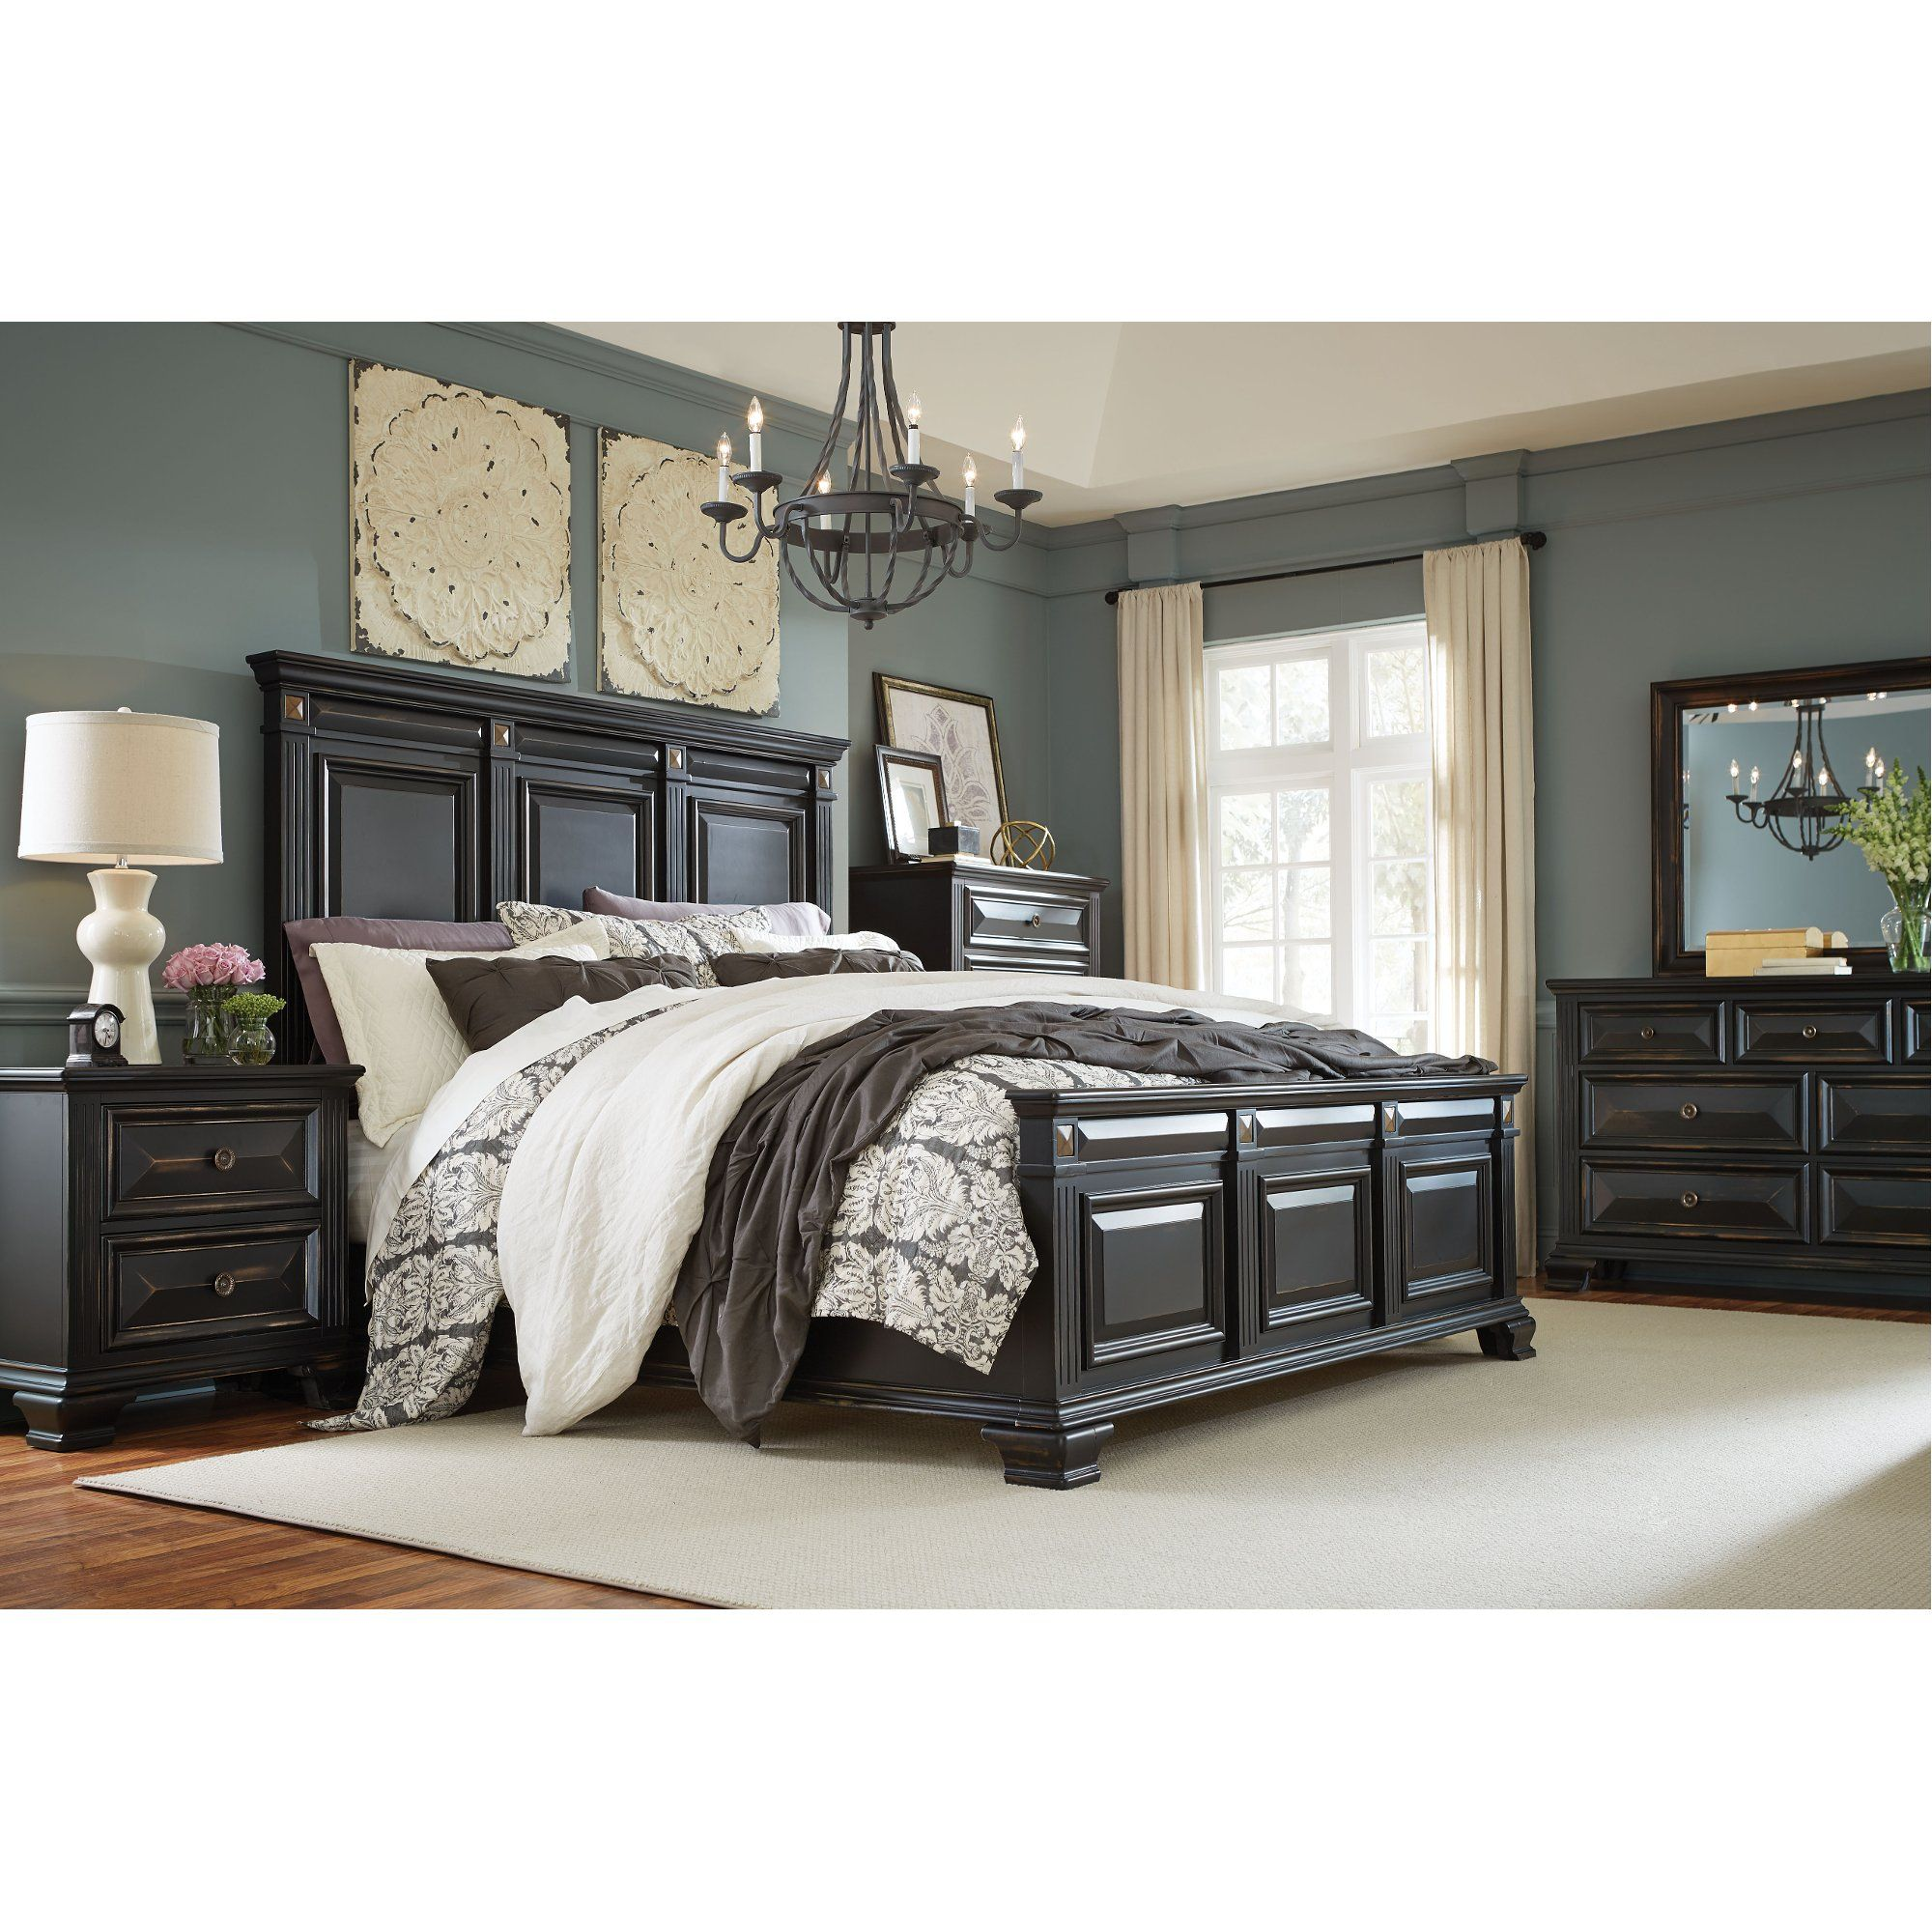 Black Traditional 4 Piece King Bedroom Set Passages King Bedroom Sets Wood Bedroom Sets Bedroom Sets Queen